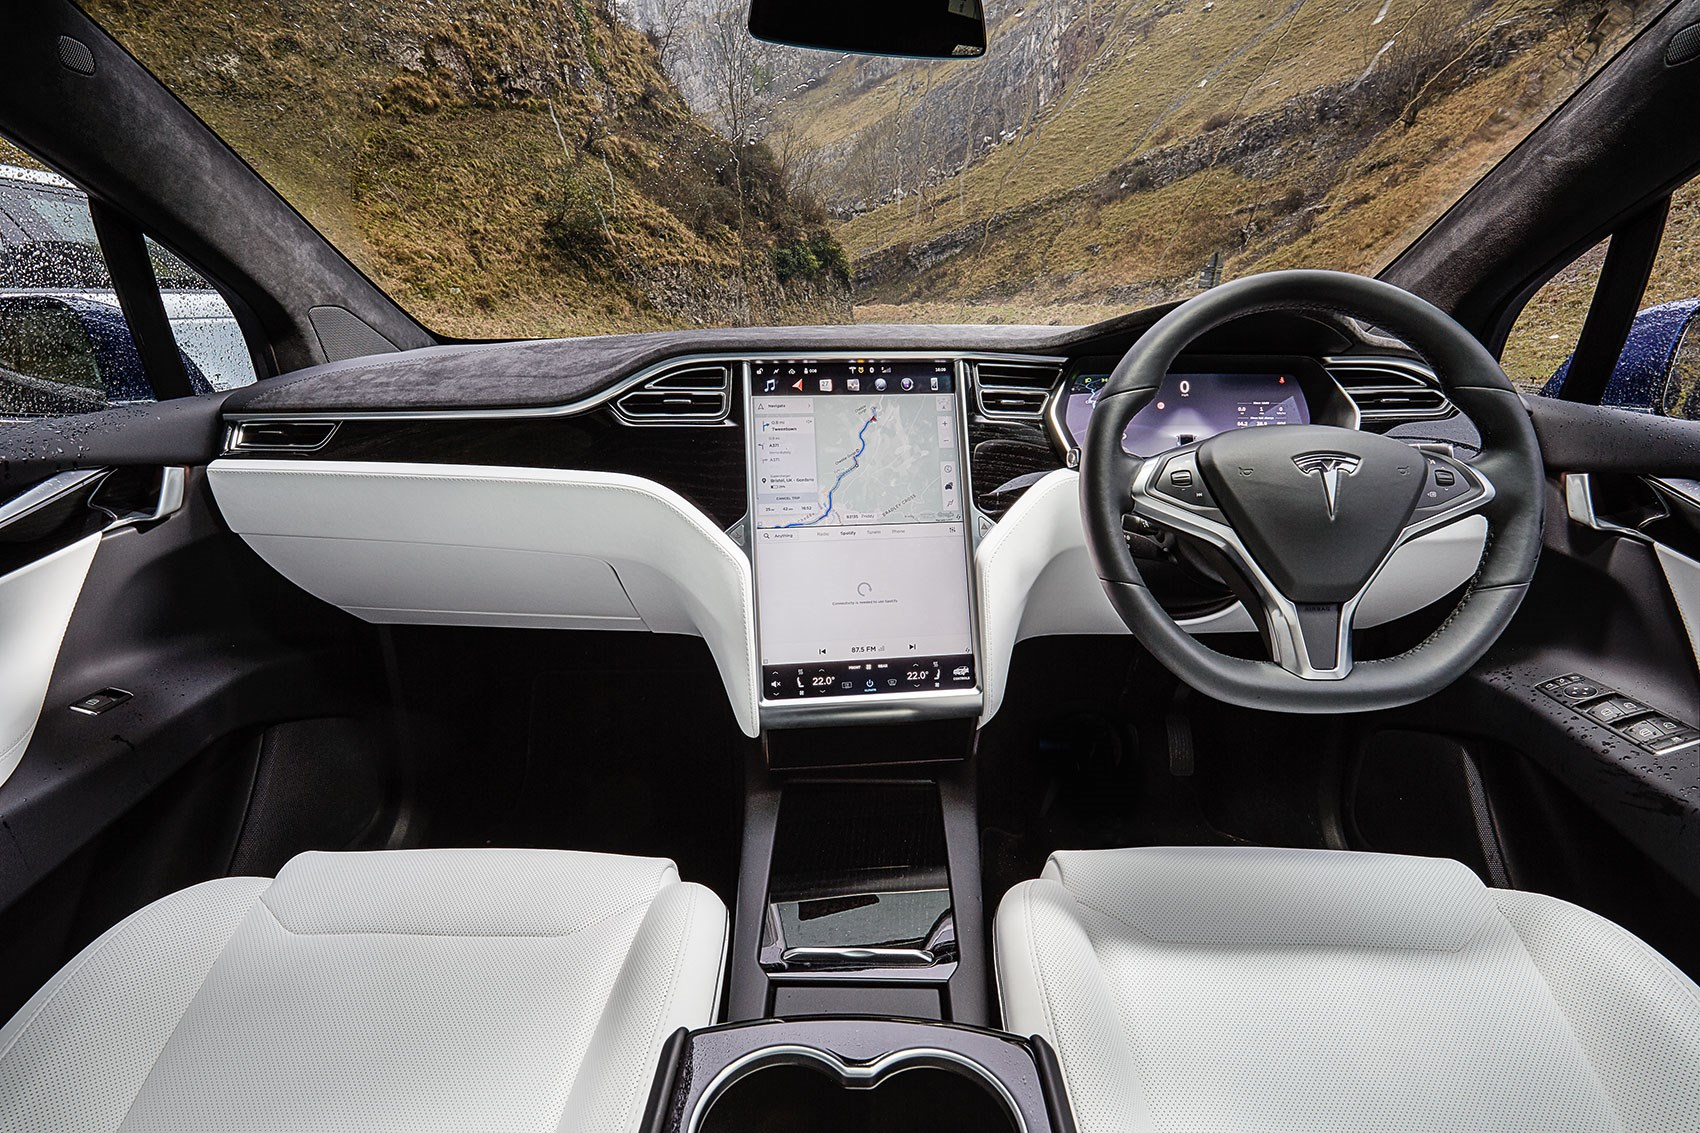 Tesla Model X Suv Interior Www Indiepedia Org